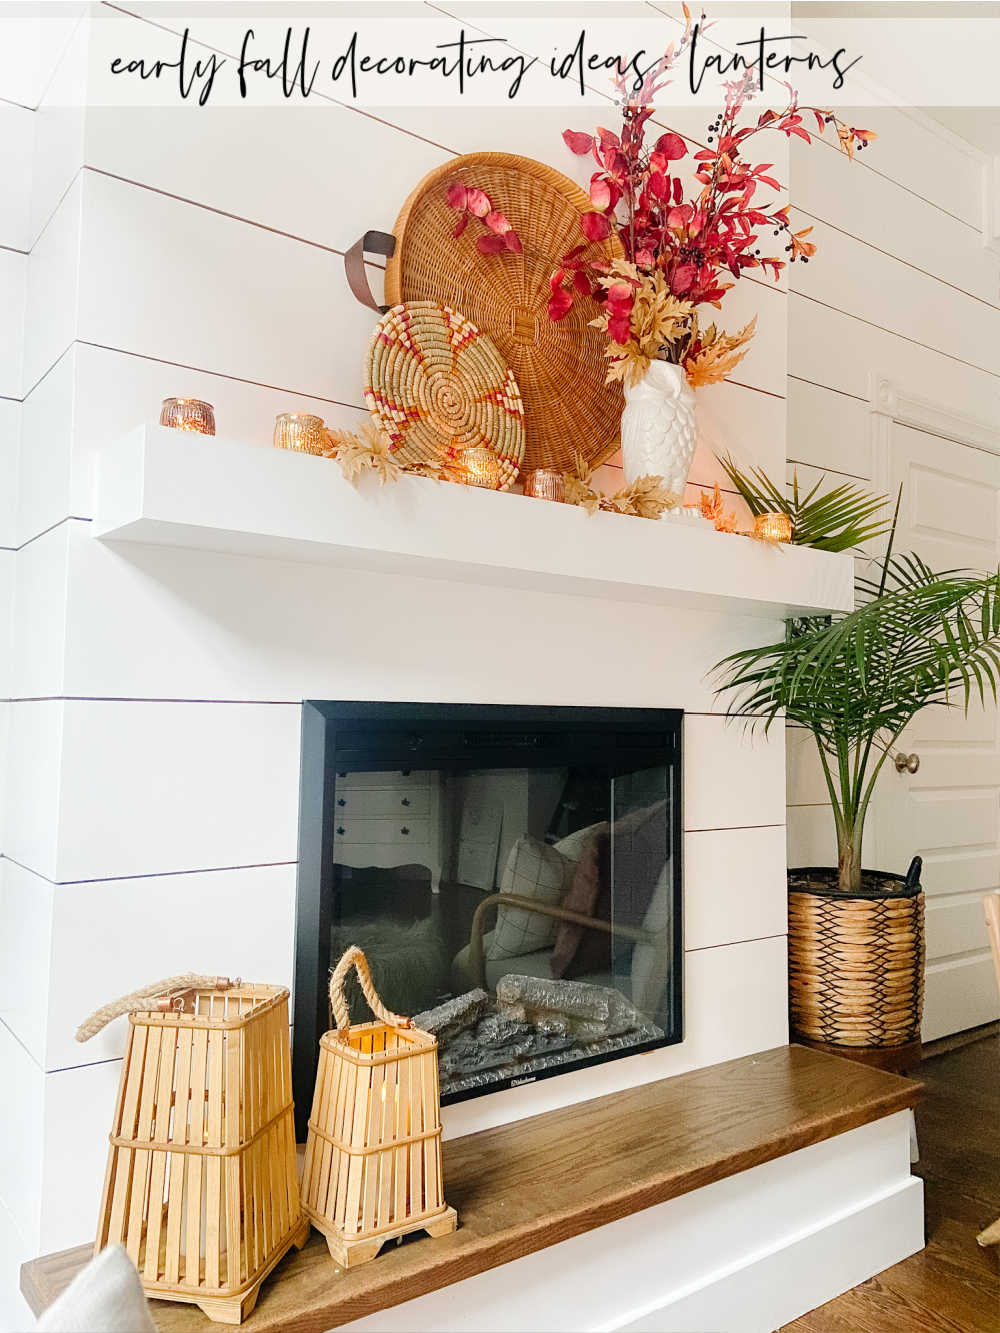 Easy Early Fall Decorating Ideas. Wondering how to transition from summer to early Fall? Here are some easy ideas with no pumpkins!